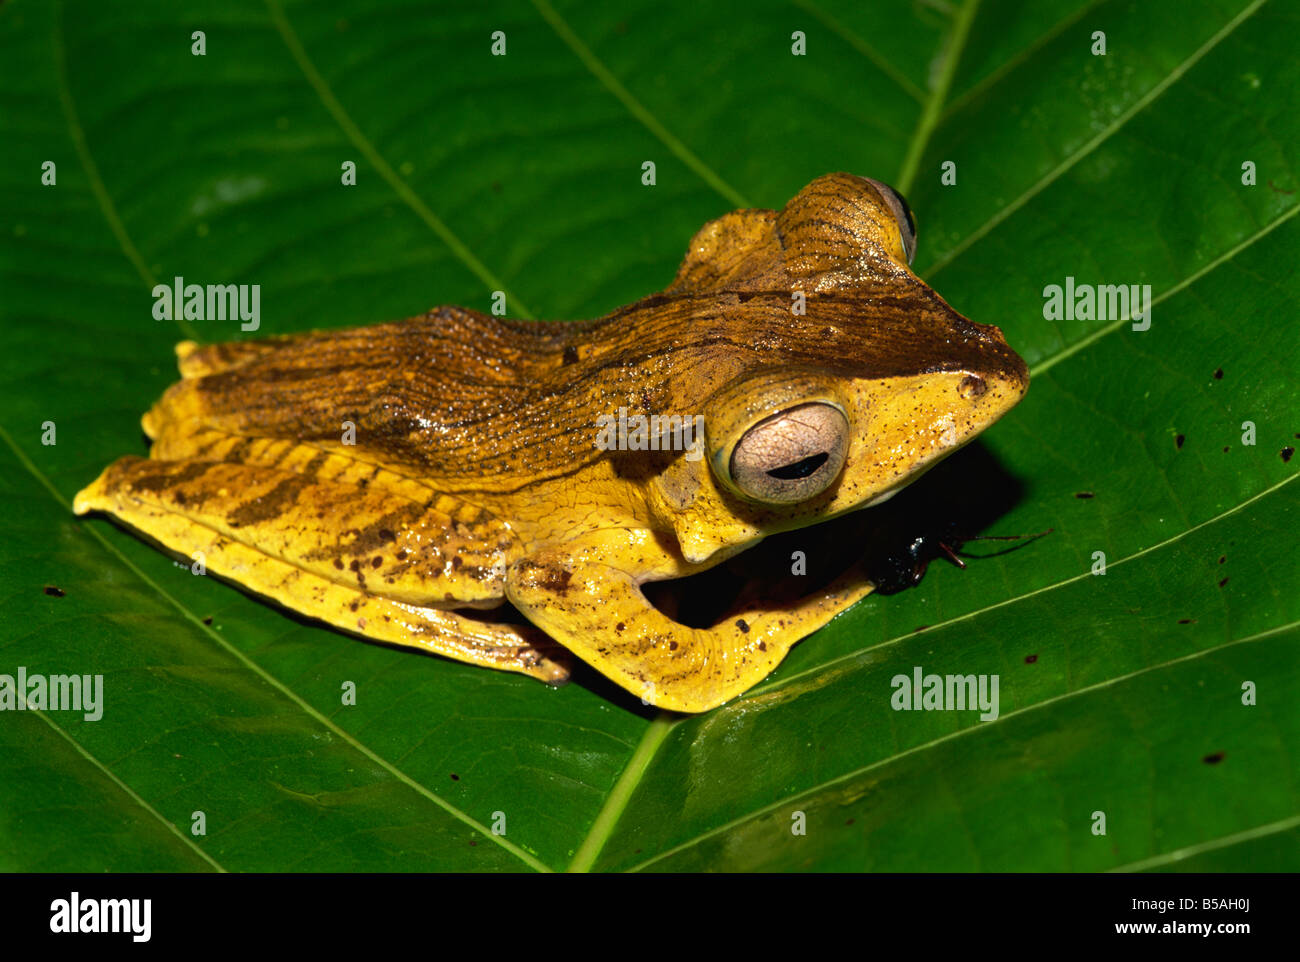 Unidentified Bornean tree frog species found in primary rainforest, Danum Valley, Sabah, Borneo, Malaysia, Southeast - Stock Image